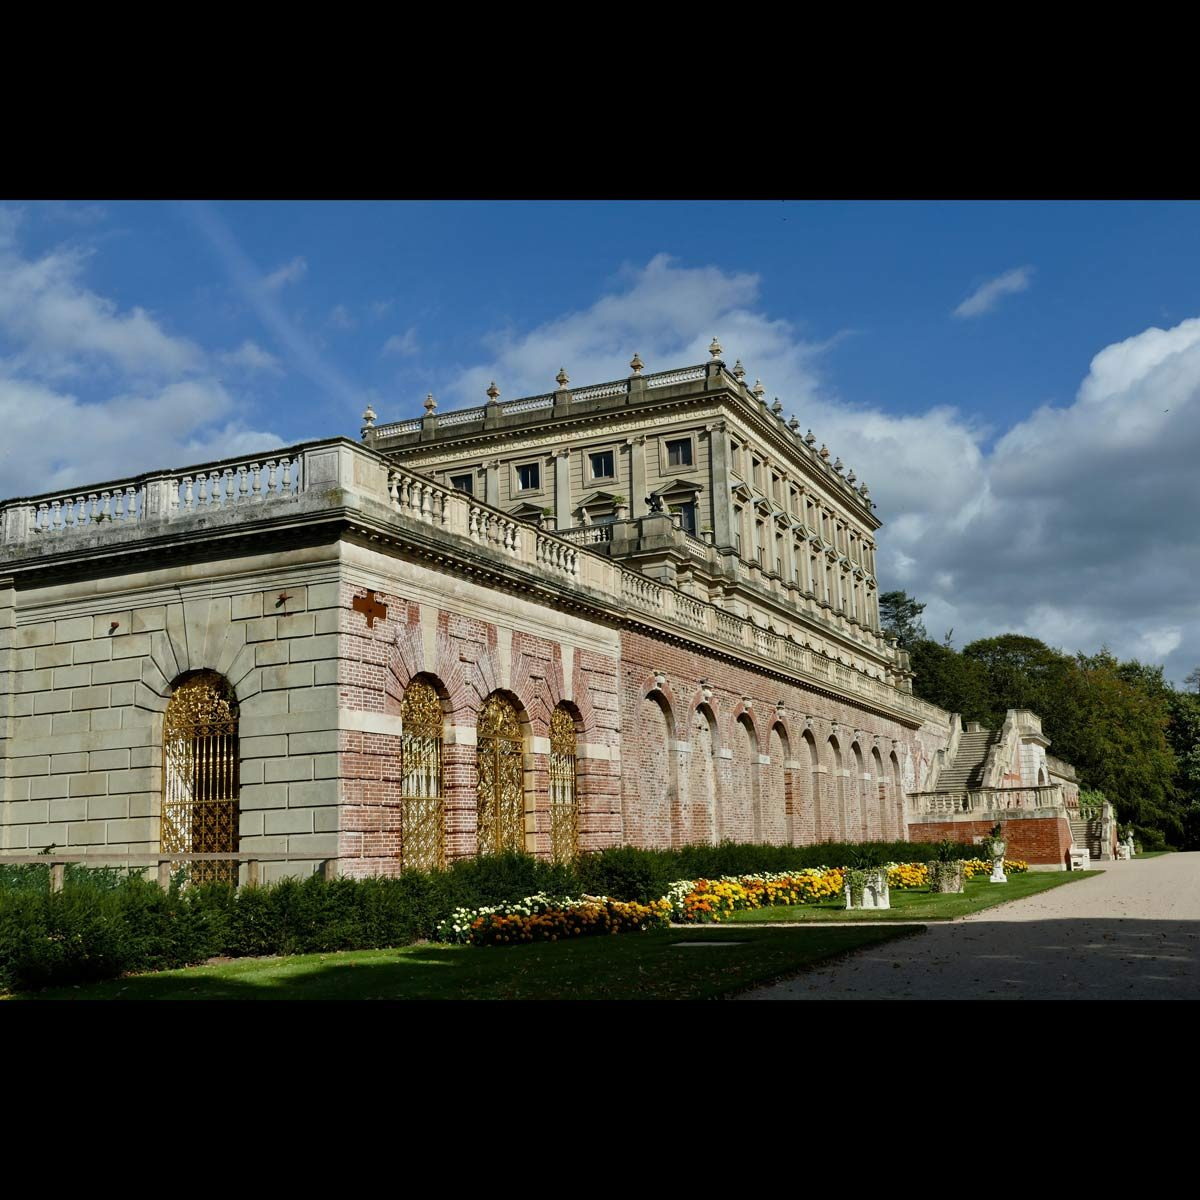 Cliveden House in Taplow in the afternoon sunshine